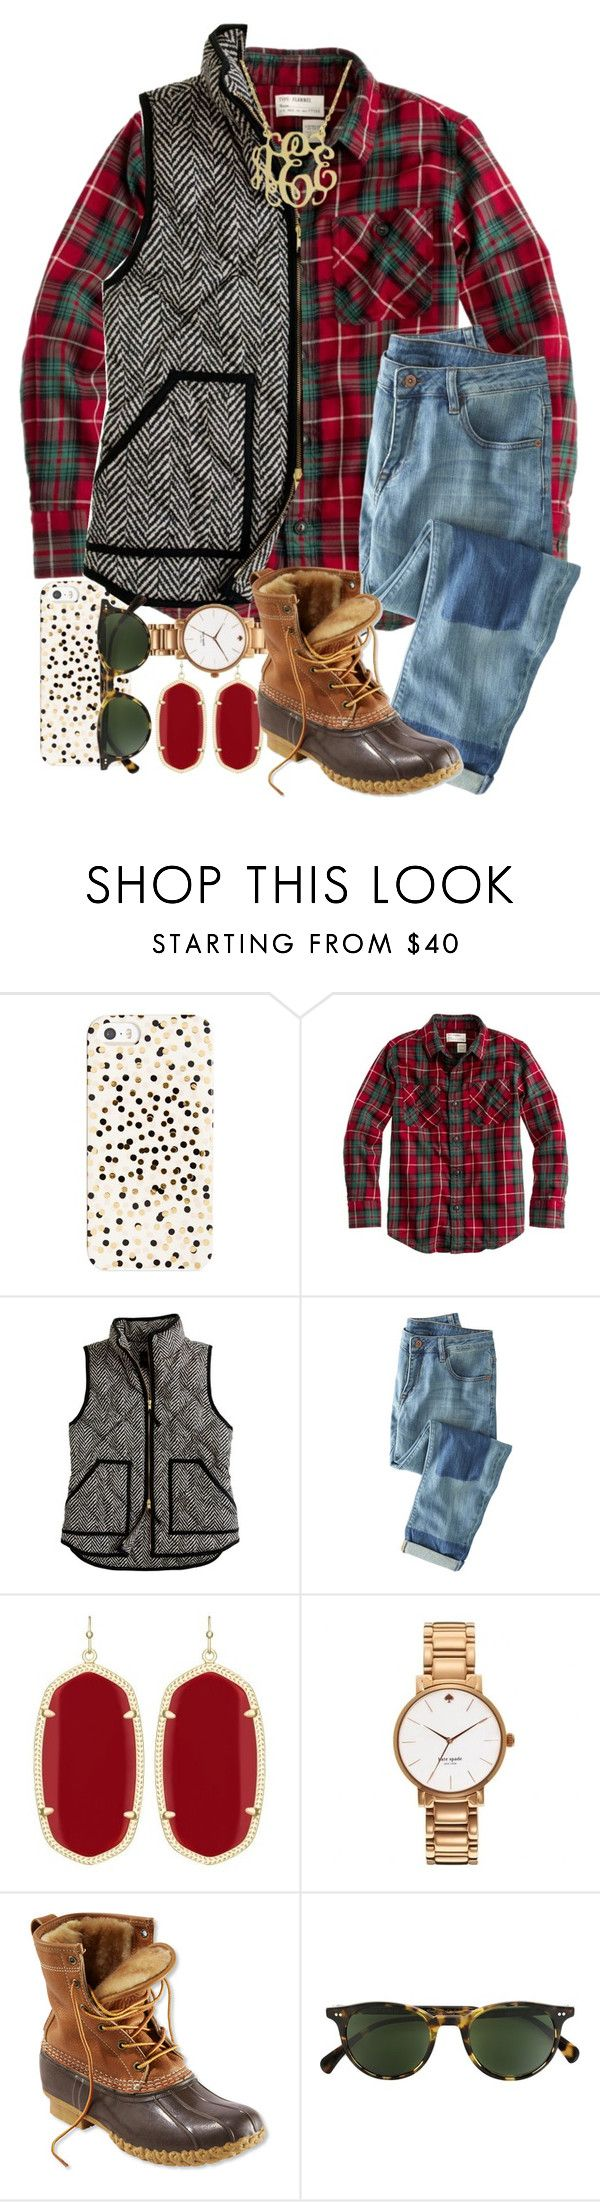 """Idk ab y'all... but I'm happy about the results of the election.."" by thefashionbyem ❤ liked on Polyvore featuring Kate Spade, J.Crew, Wrap, Kendra Scott, L.L.Bean and Oliver Peoples"